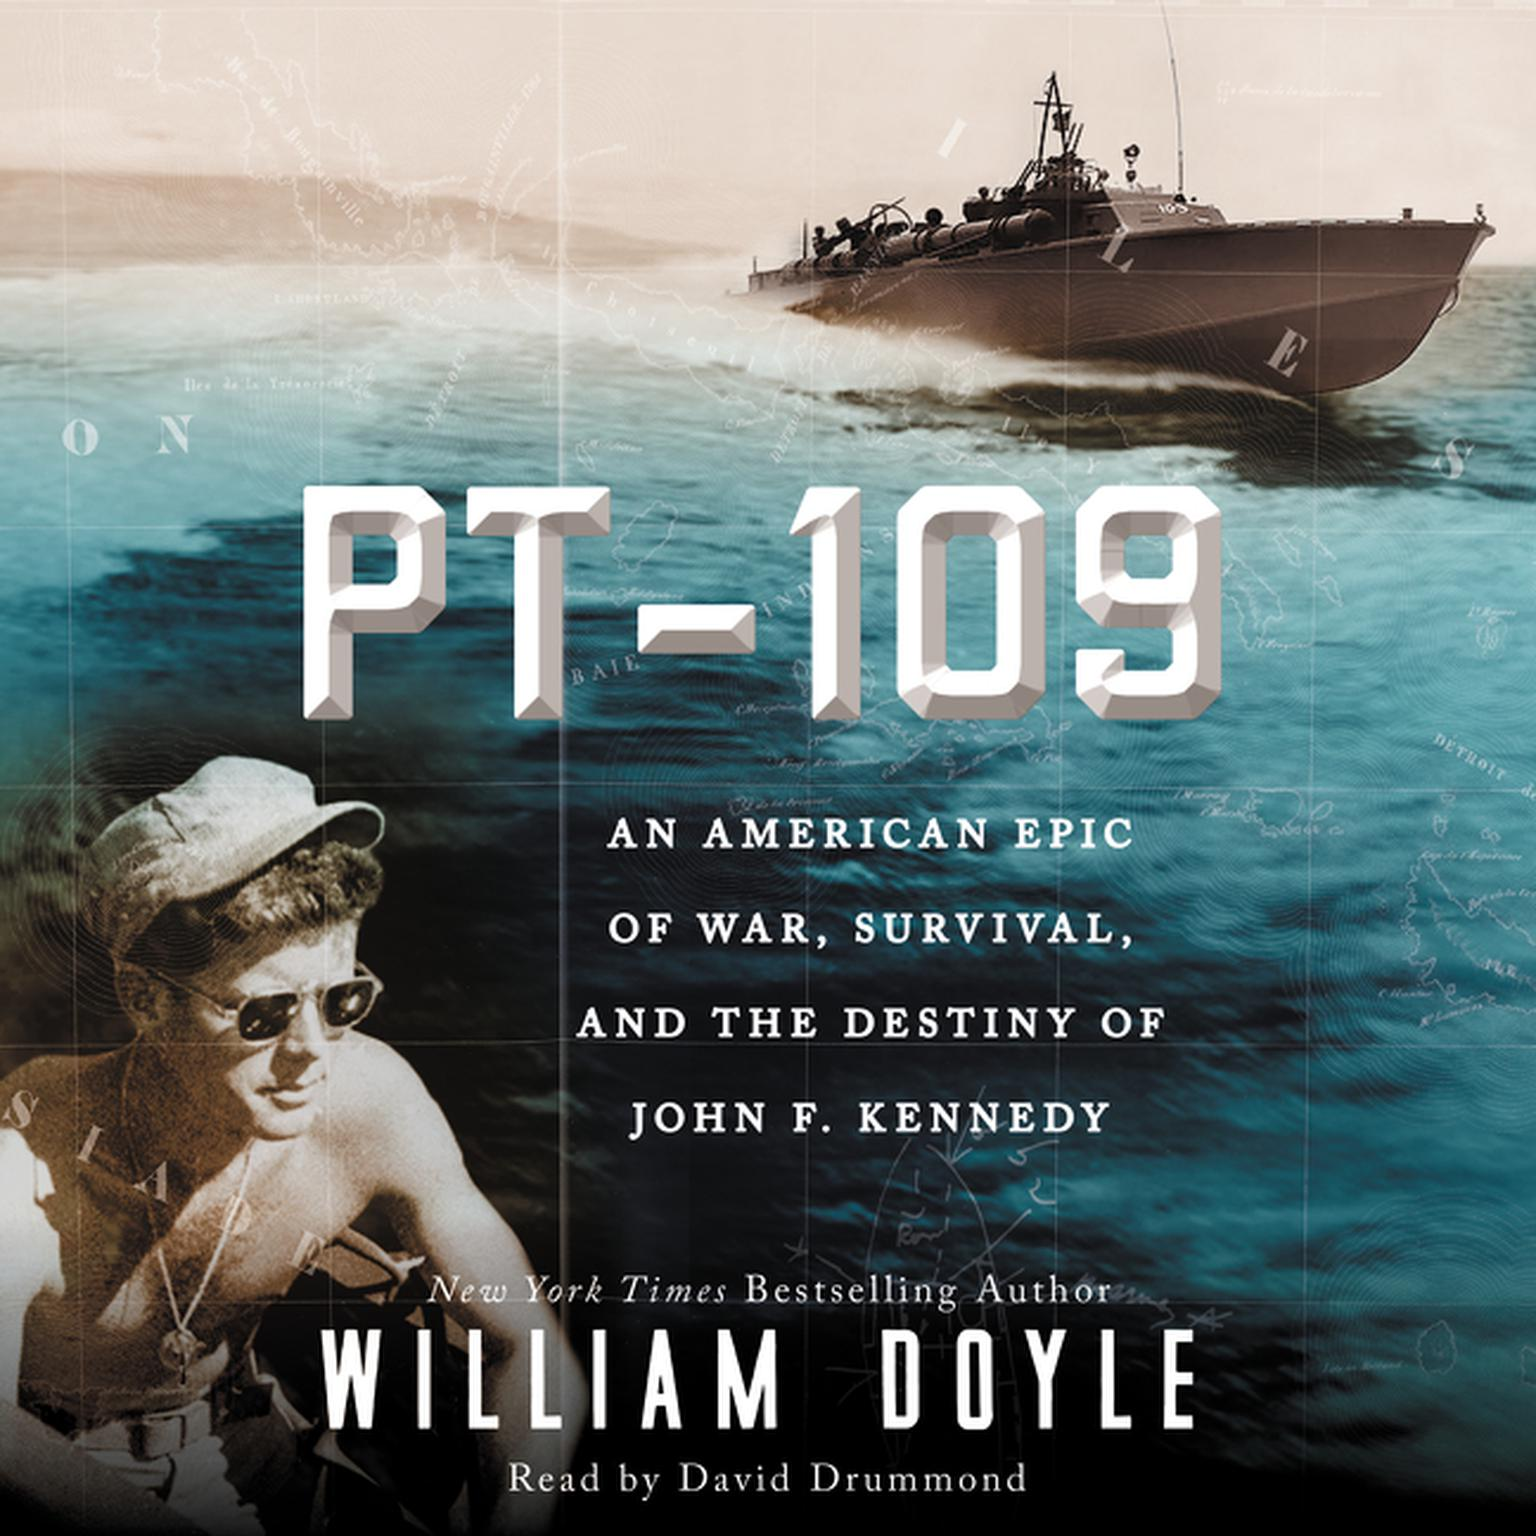 Printable PT-109: An American Epic of War, Survival, and the Destiny of John F. Kennedy Audiobook Cover Art